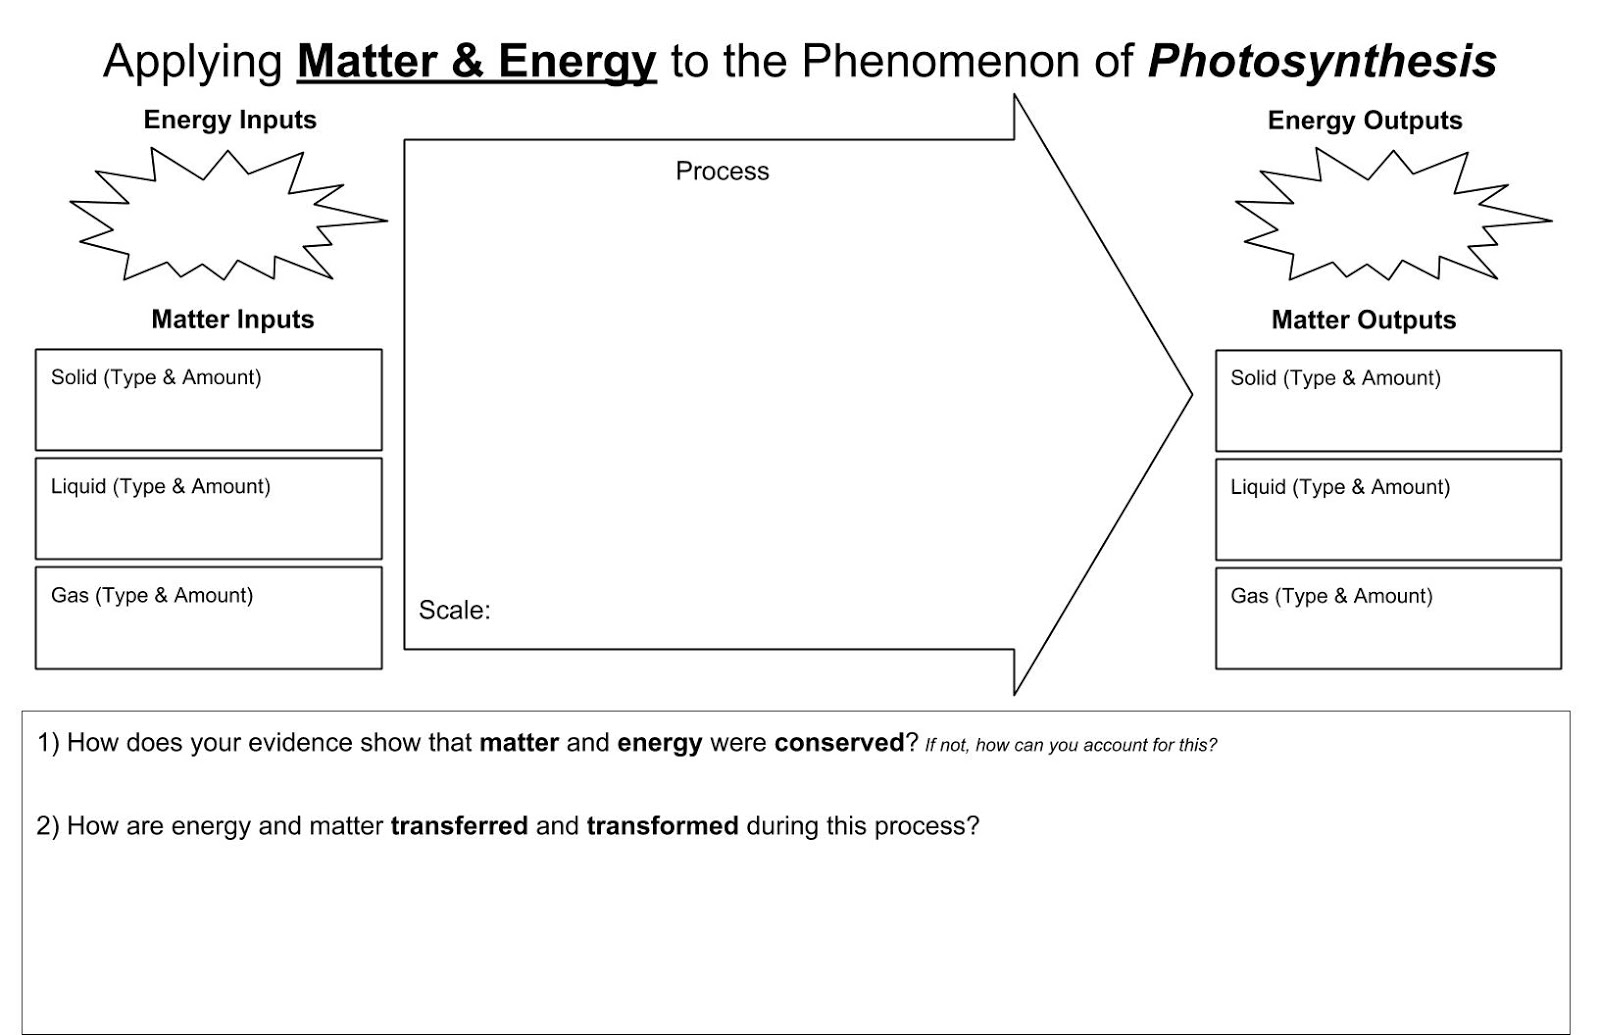 diagram with inputs and outputs of photosynthesis process 2002 ford f250 stereo wiring north country 3d science cafe why do plants grow toward the sun from set crosscutting concepts graphic organizers in 11x17